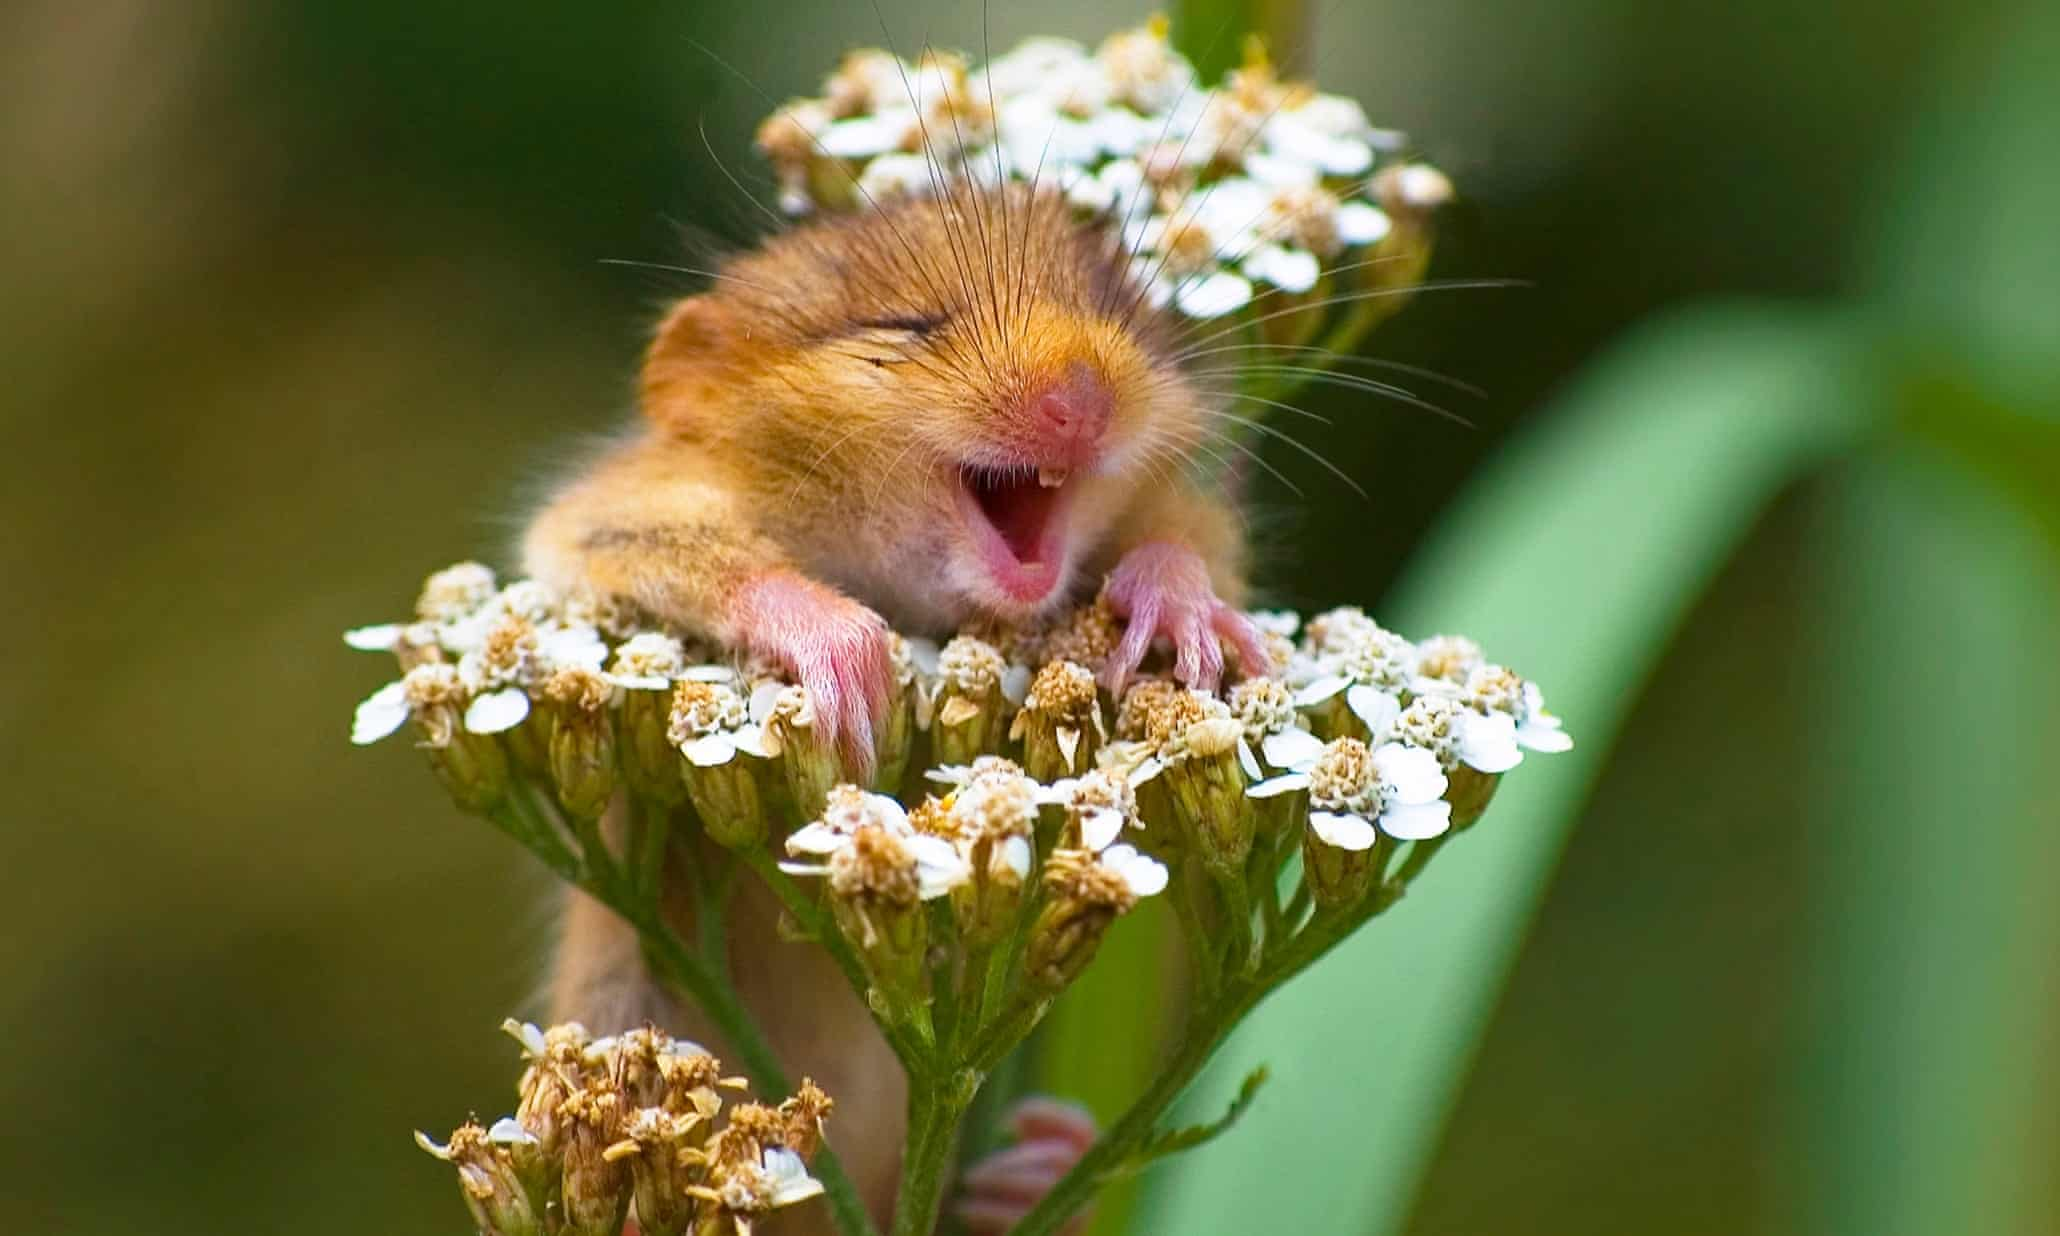 Hee haw: 'laughing animals' - in pictures